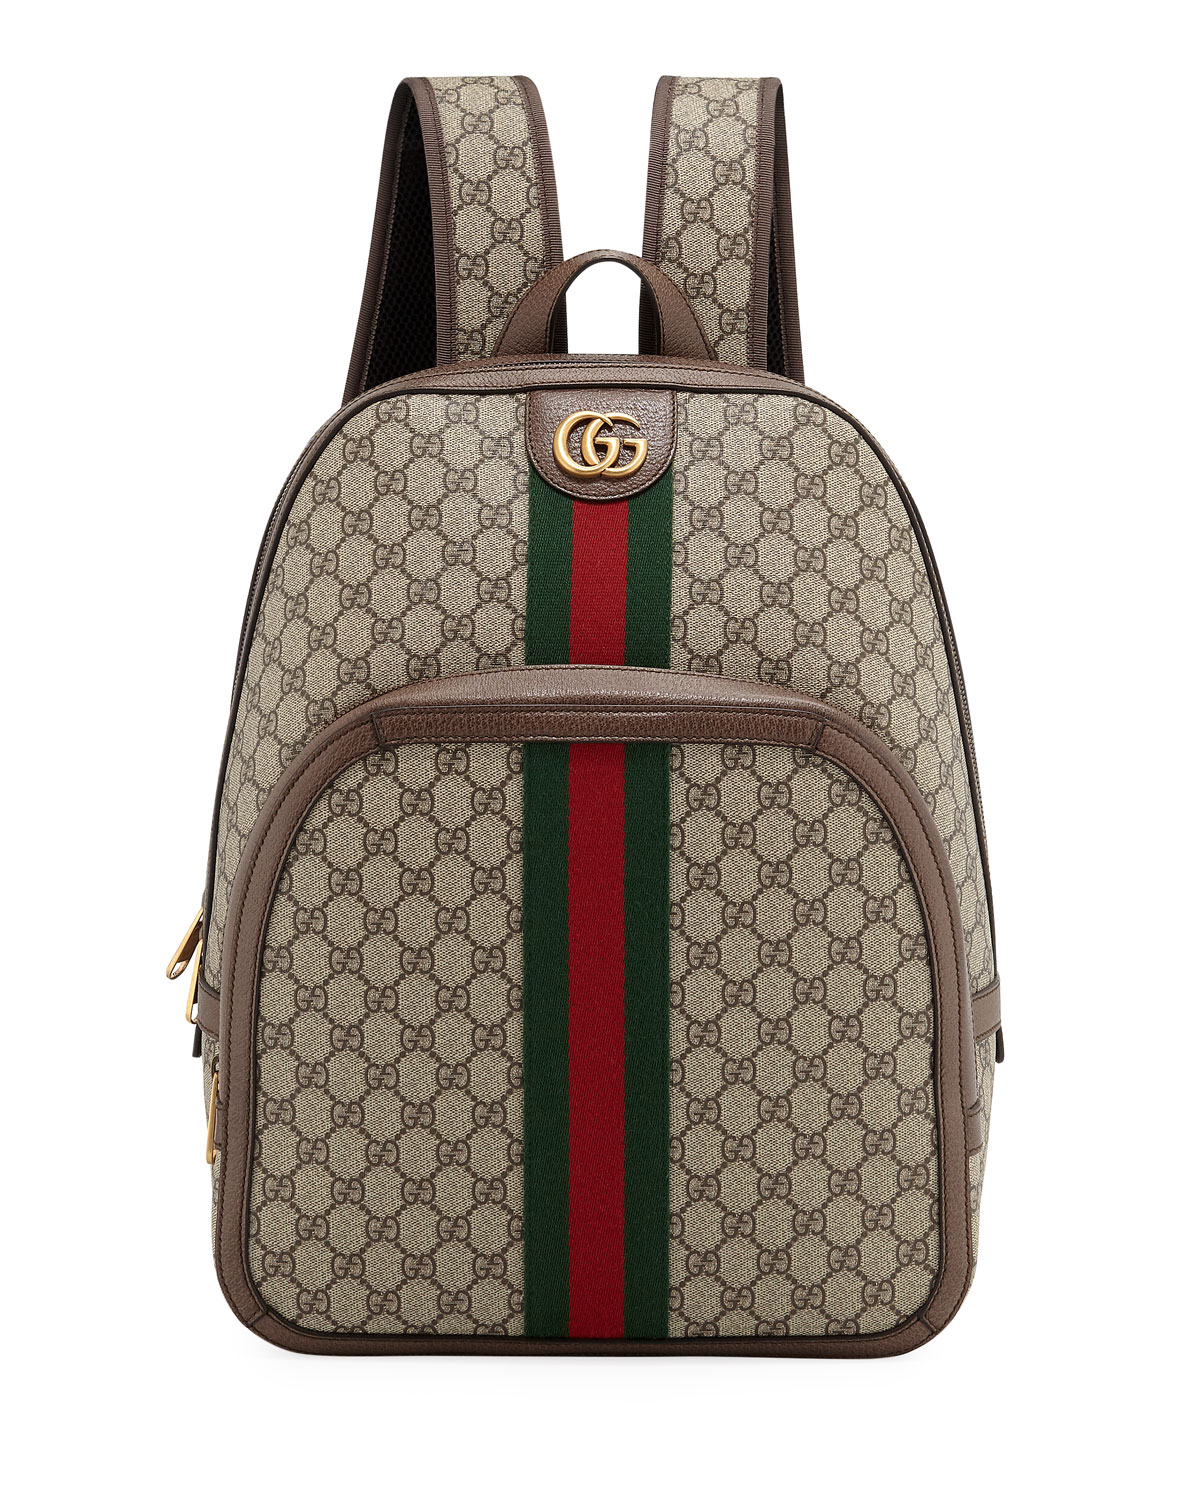 59363c4e9 Gucci Men's GG Supreme Medium Canvas Backpack | Neiman Marcus